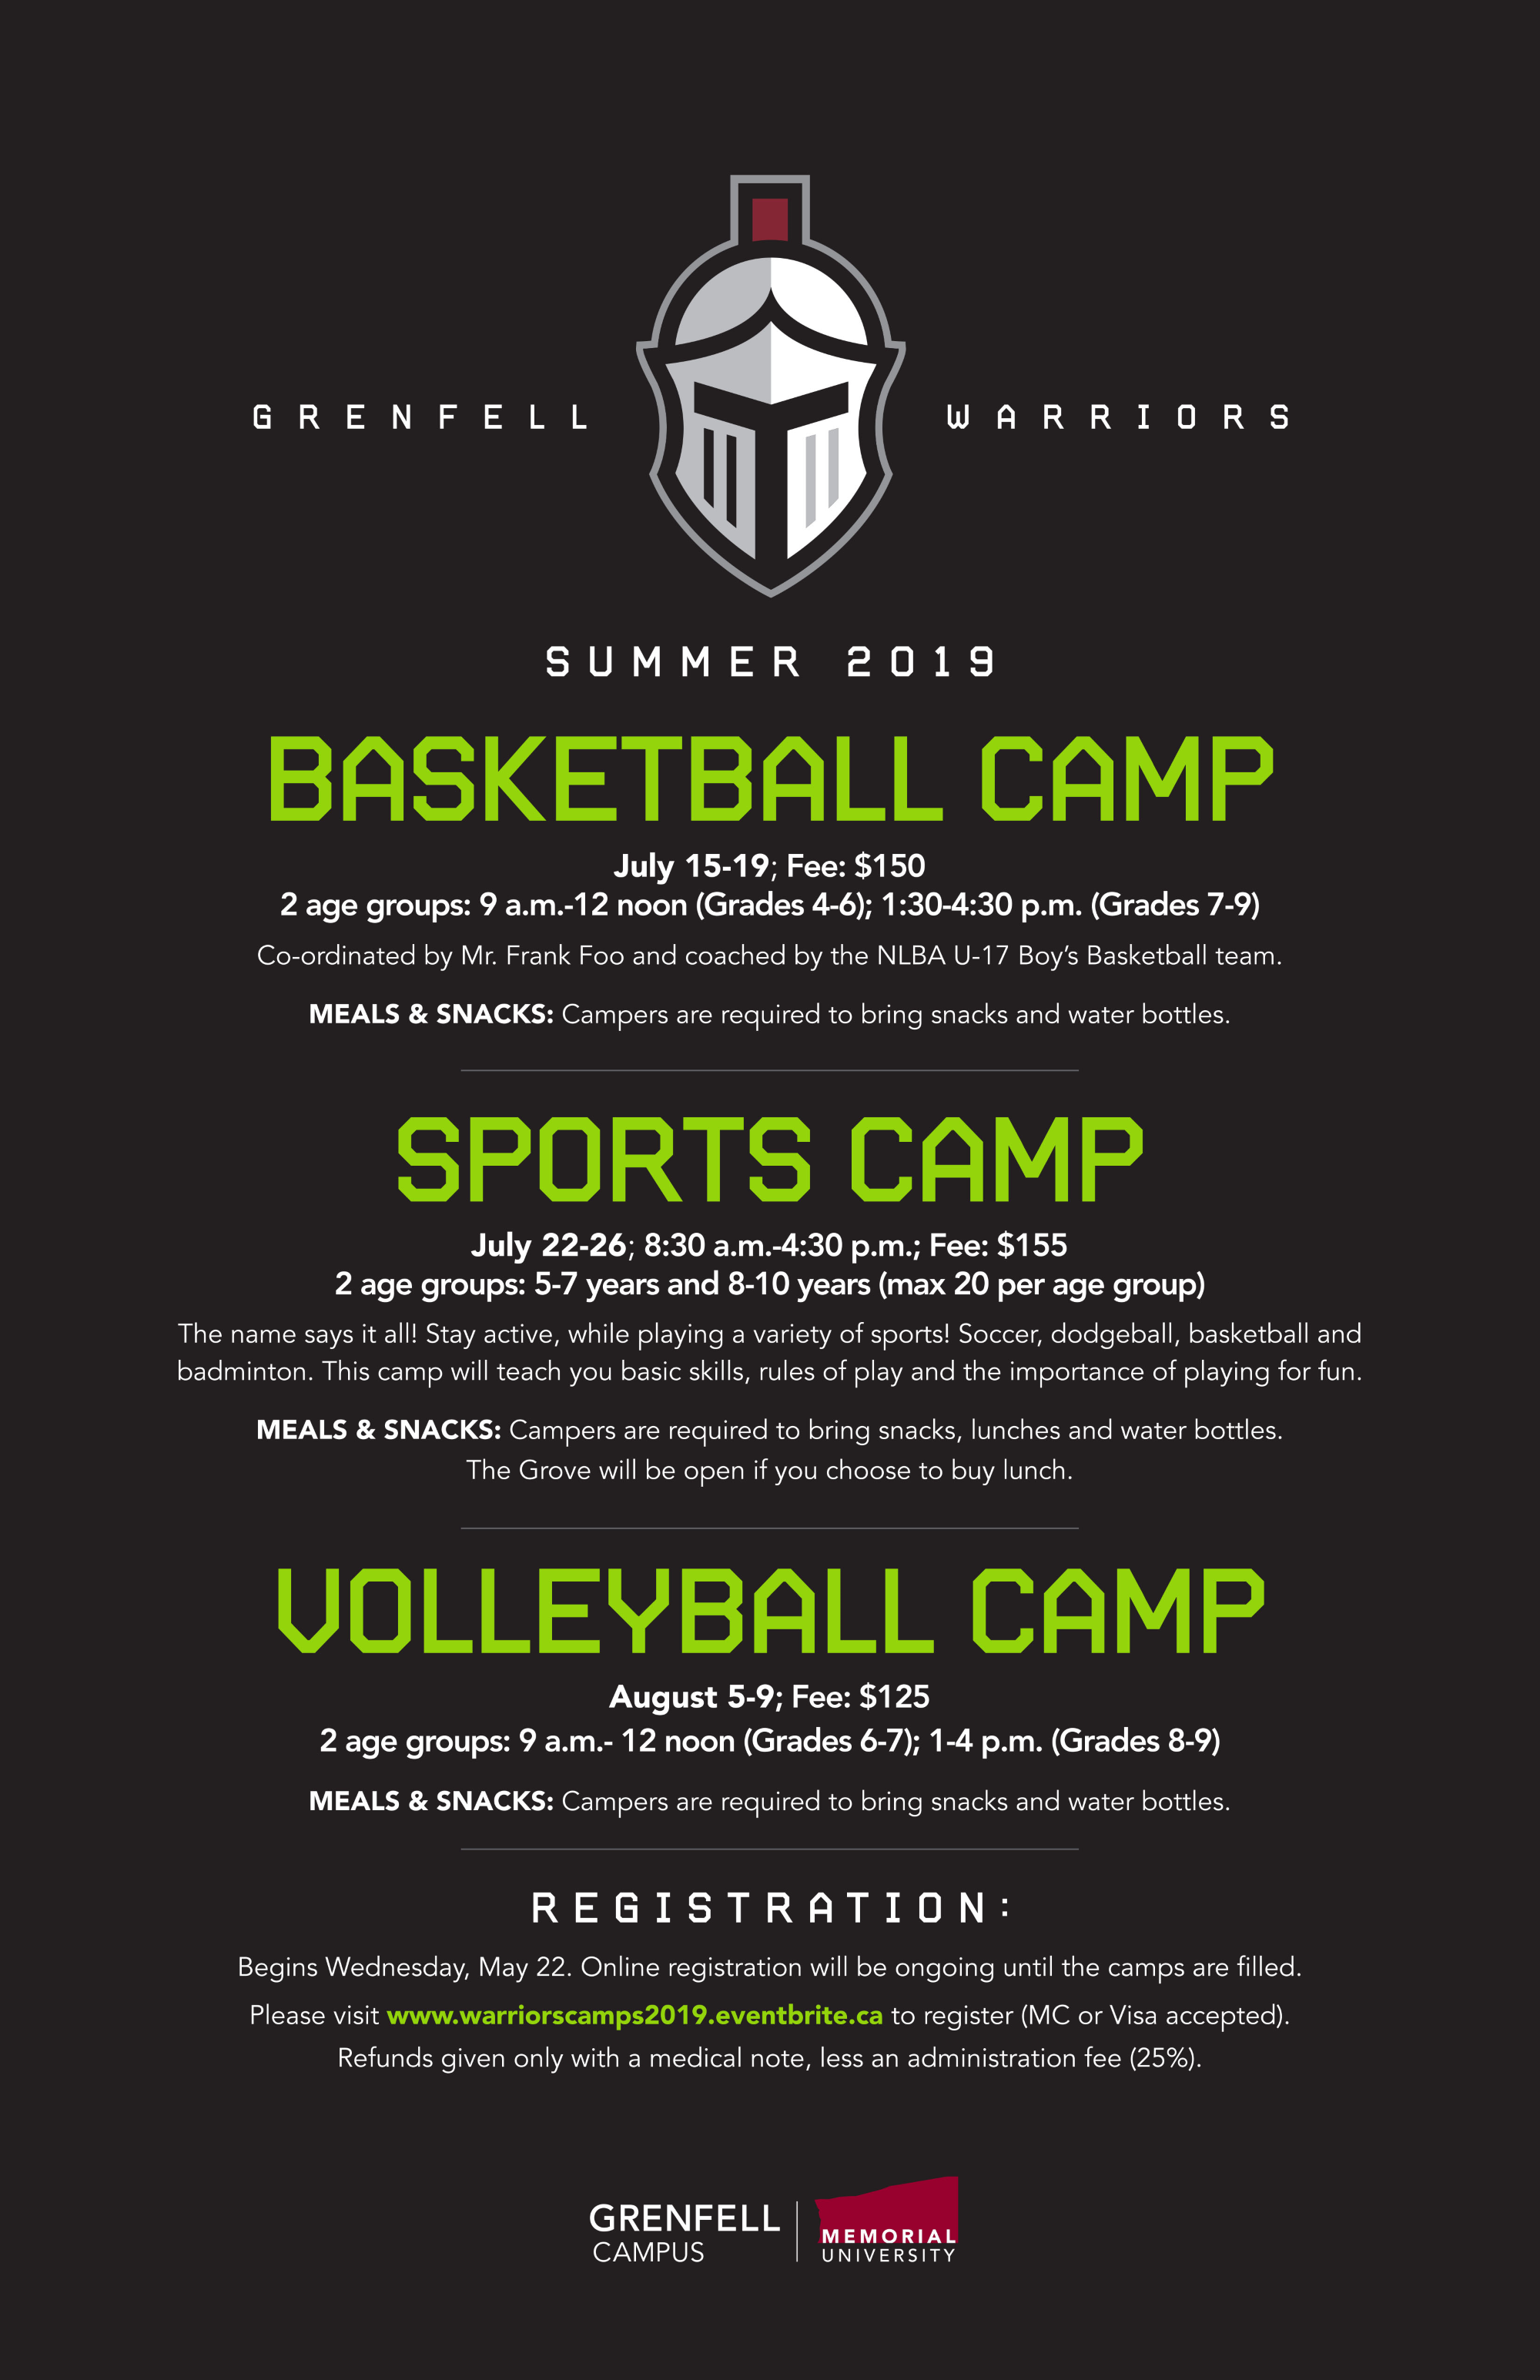 warriors_summer_camps_poster_2019 (002).png